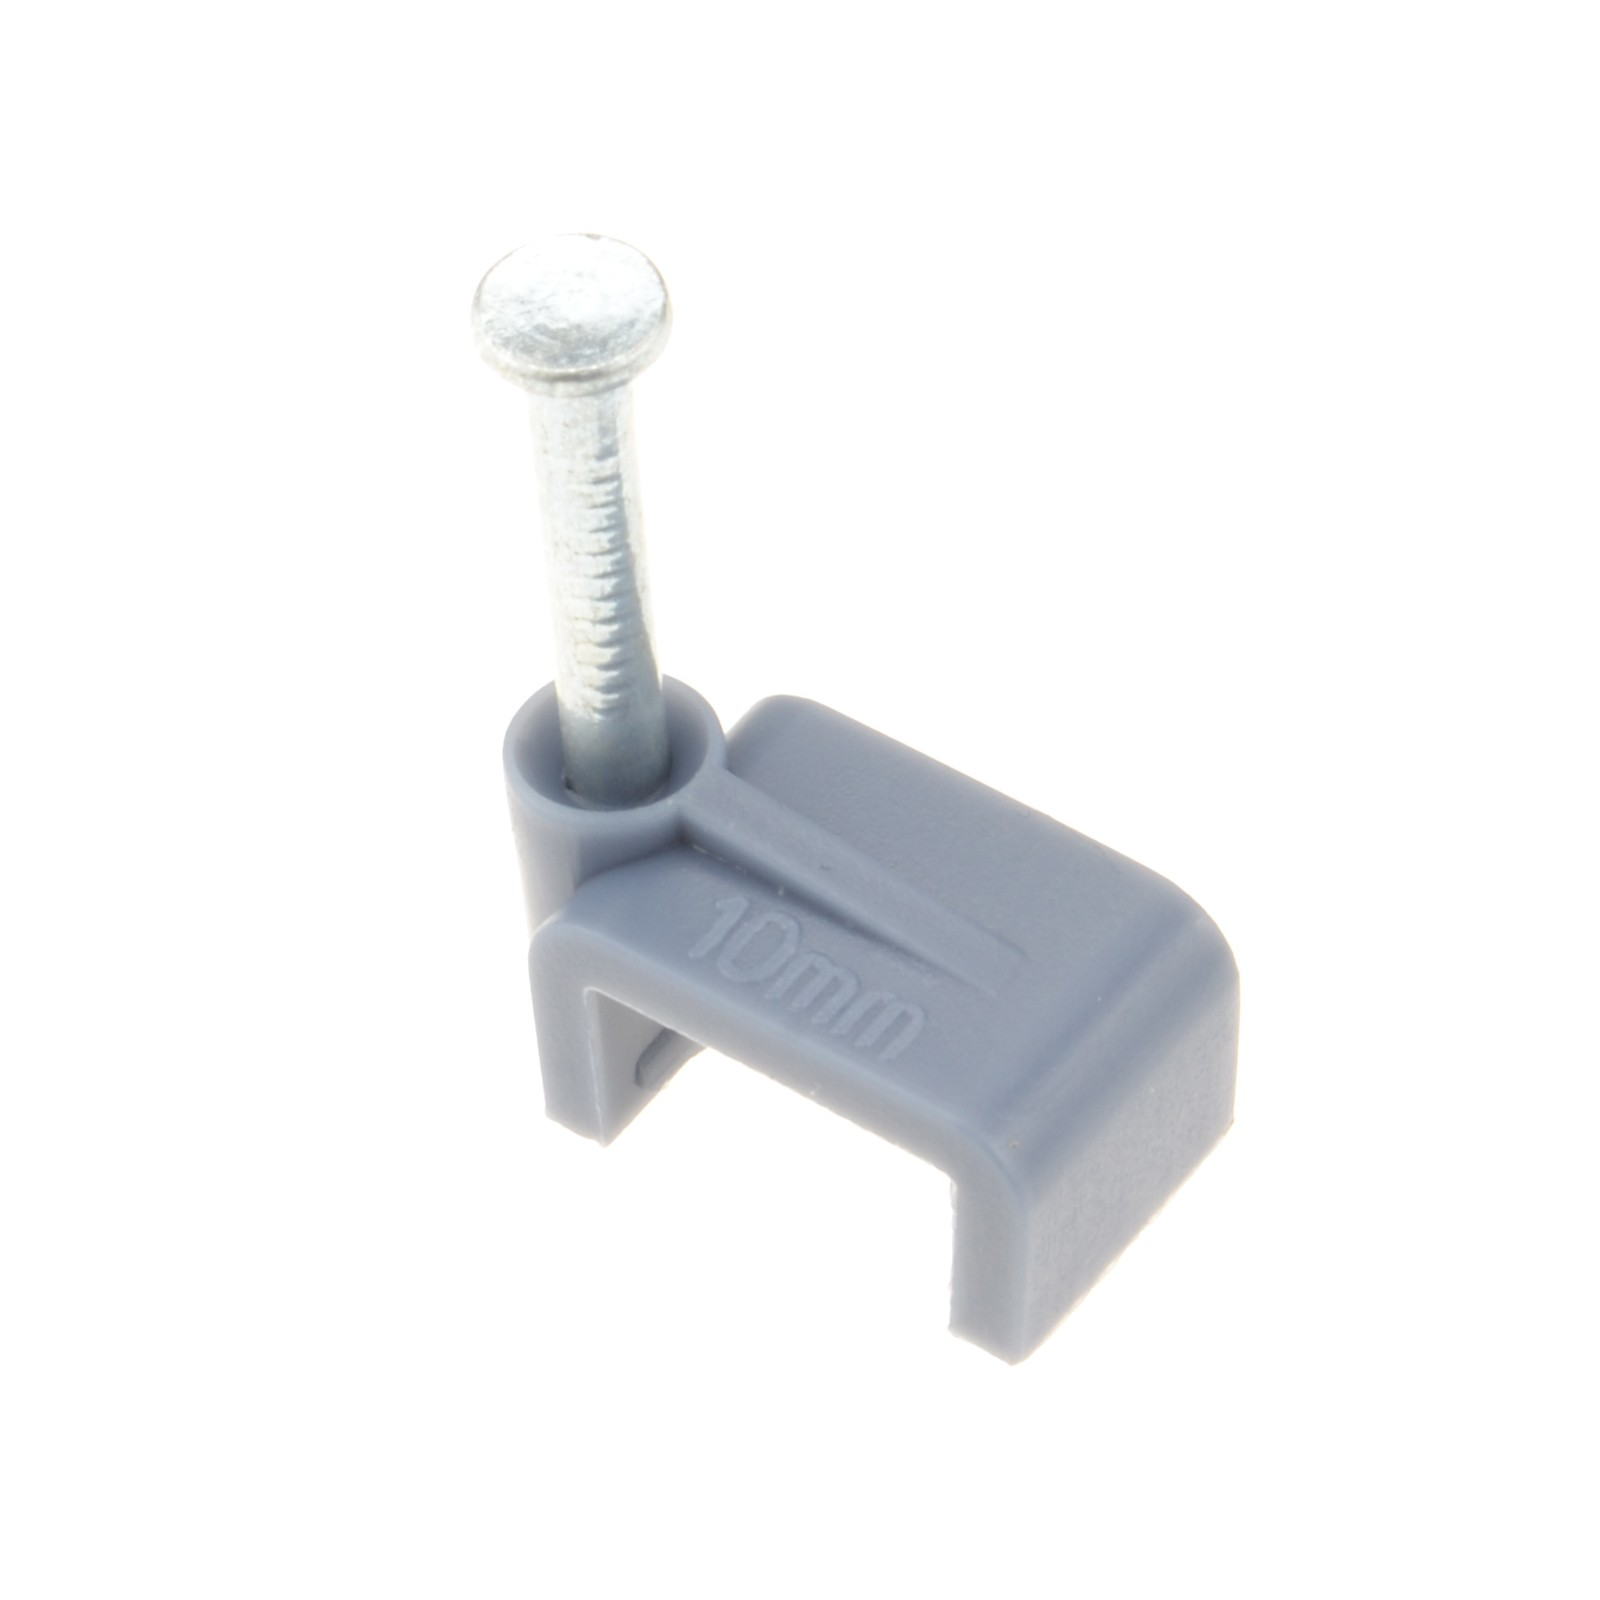 2 X Cable-Tex Flat cable clips 100 Pack for 2.5mm twin /& earth Grey